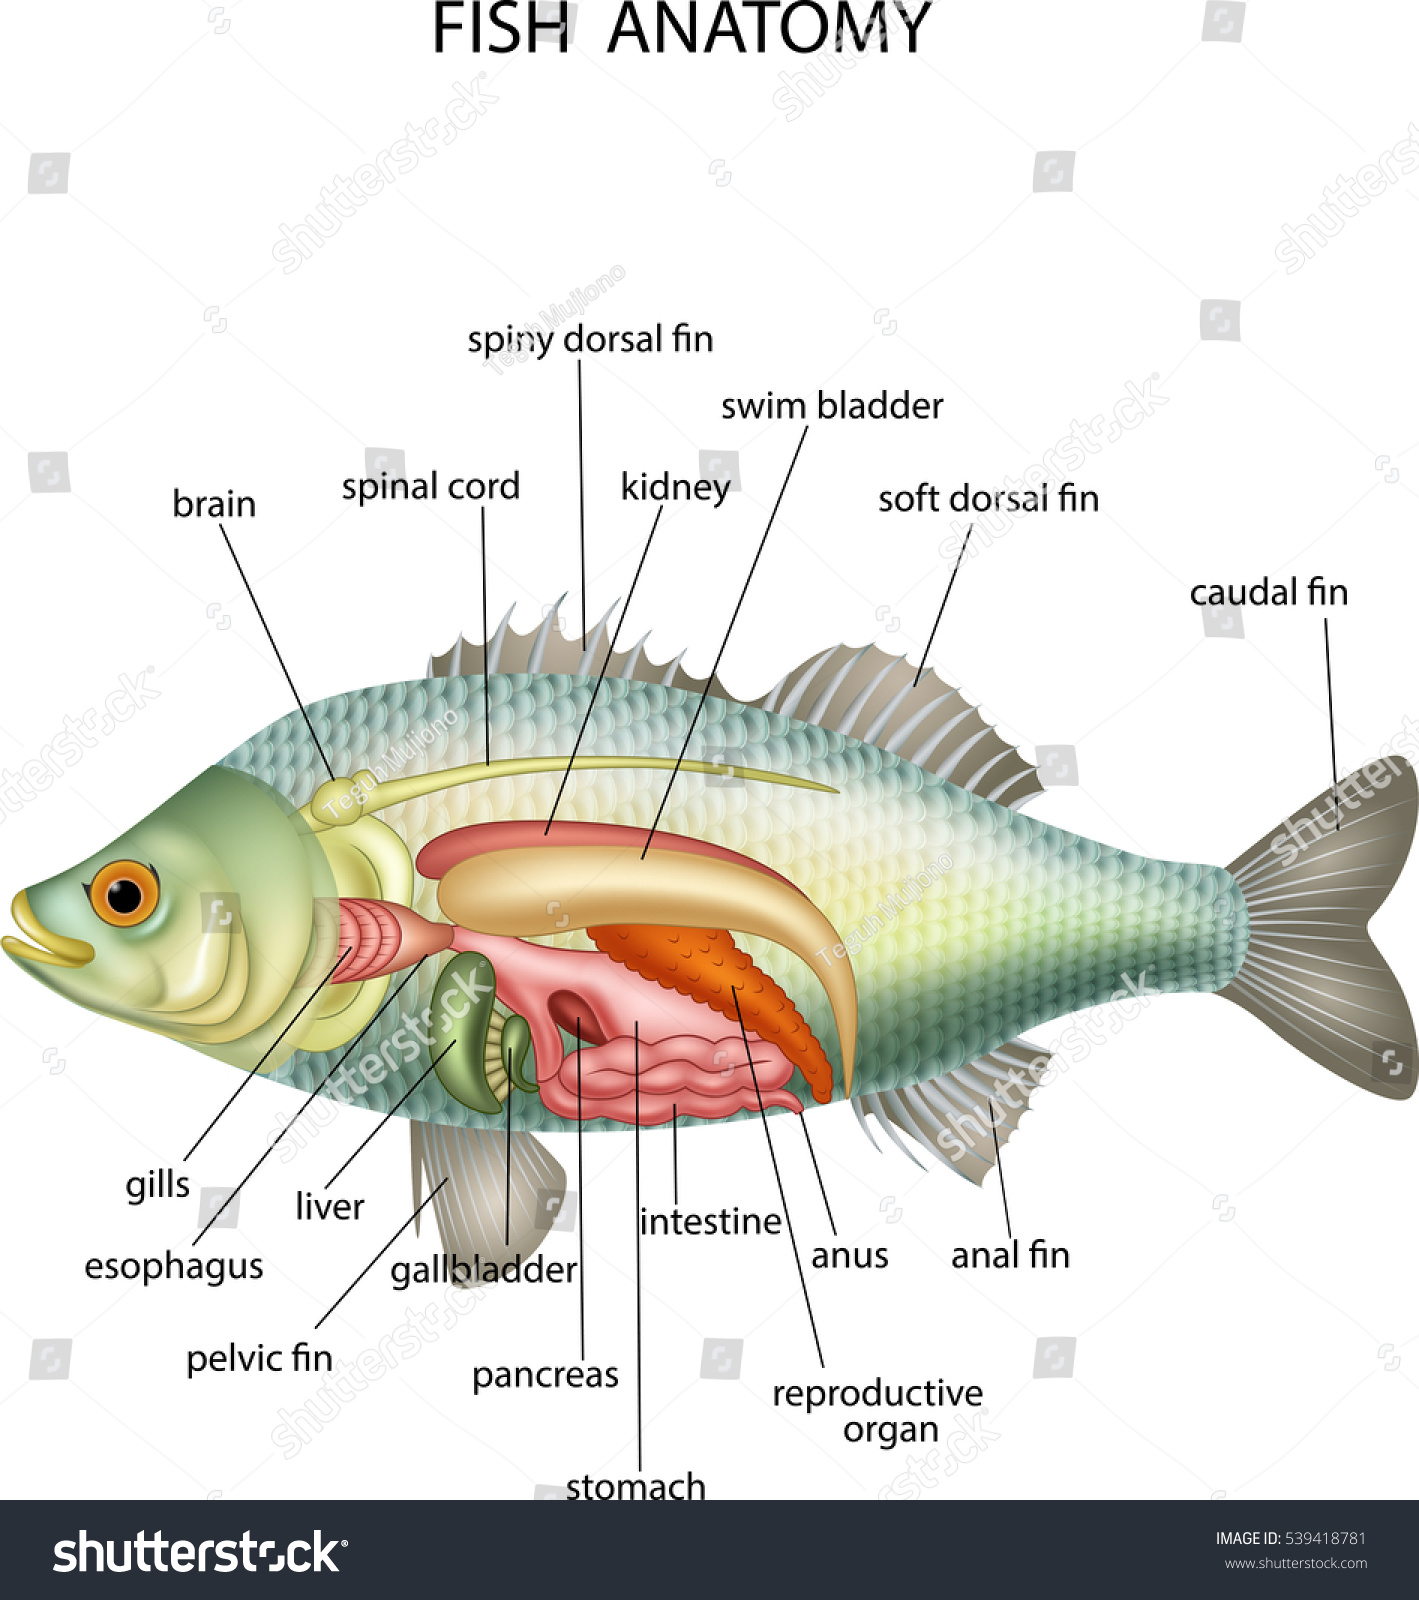 Worksheet Fish Anatomy Worksheet Grass Fedjp Worksheet